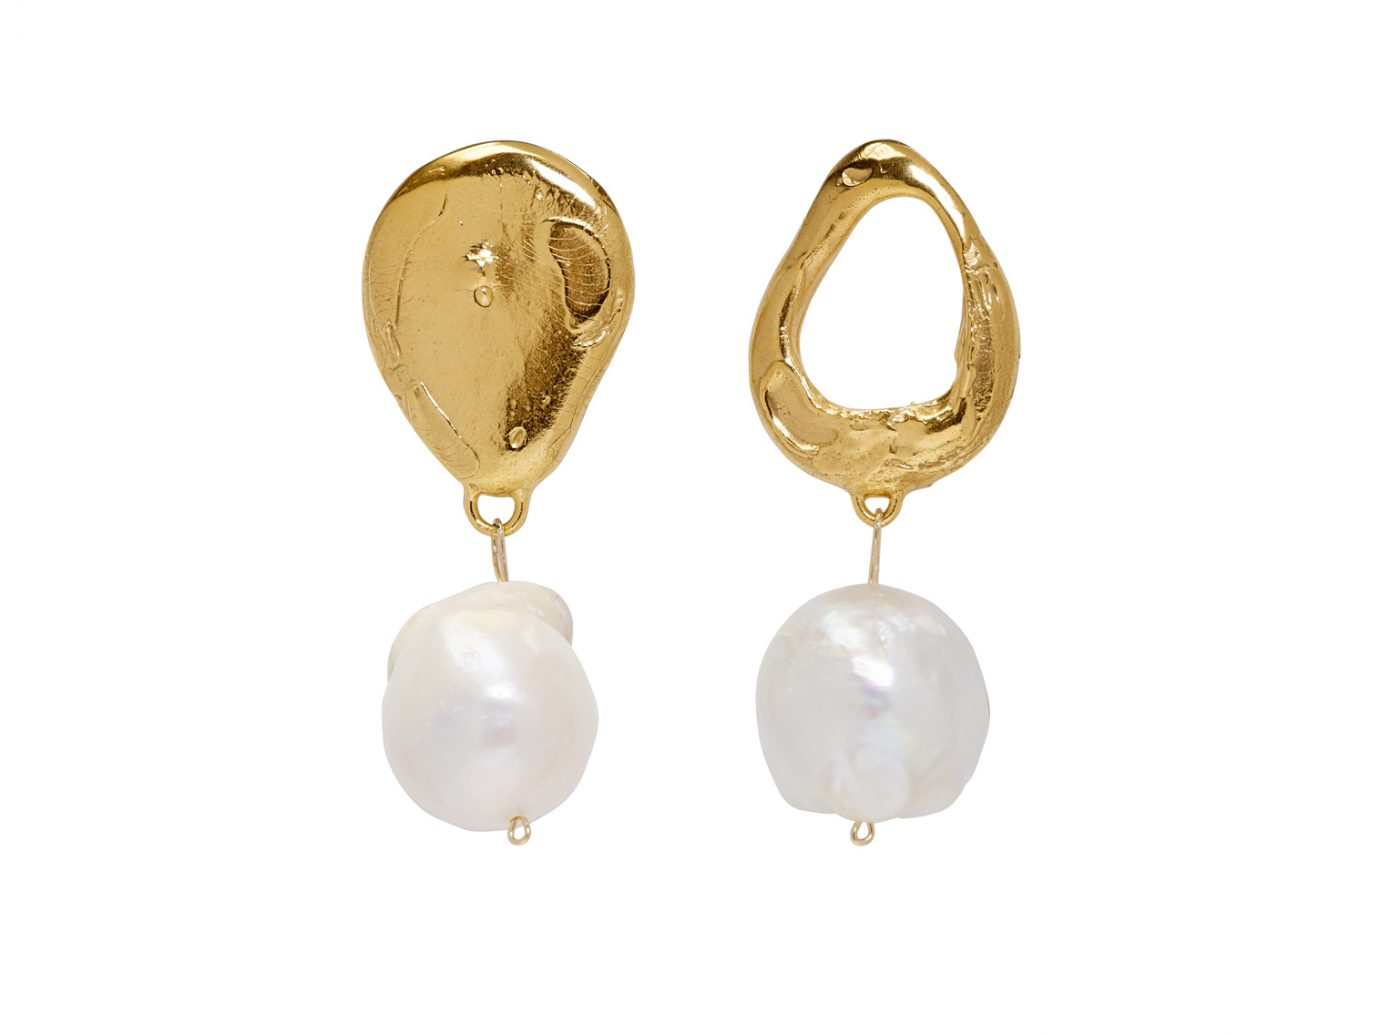 Alighieri Gold The Infernal Storm Pearl Earrings